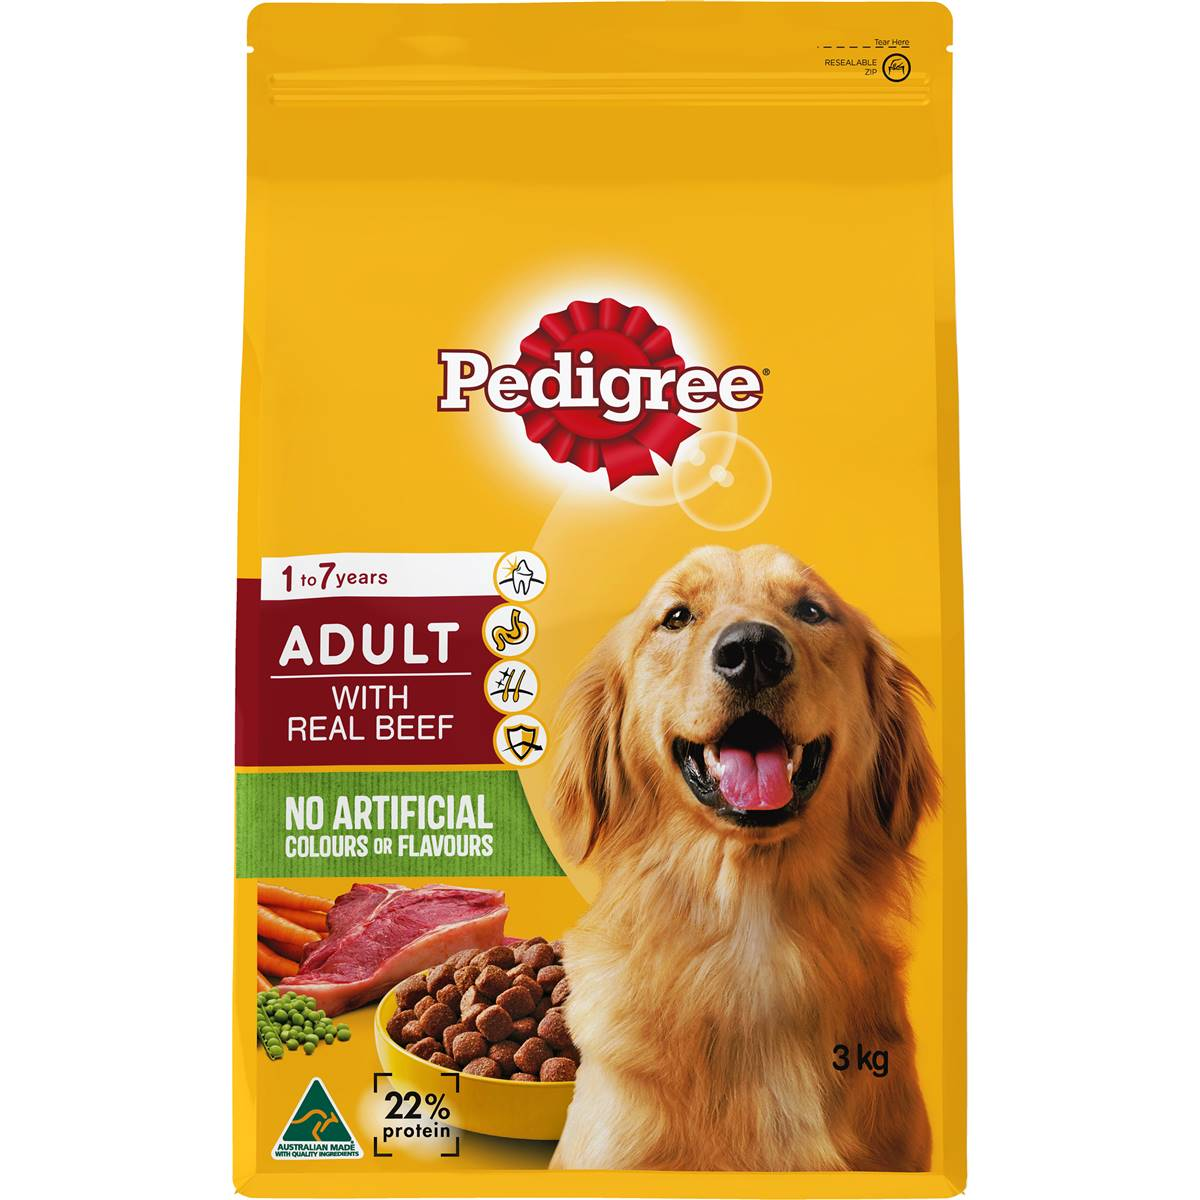 Pedigree Adult Dog Food With Real Beef